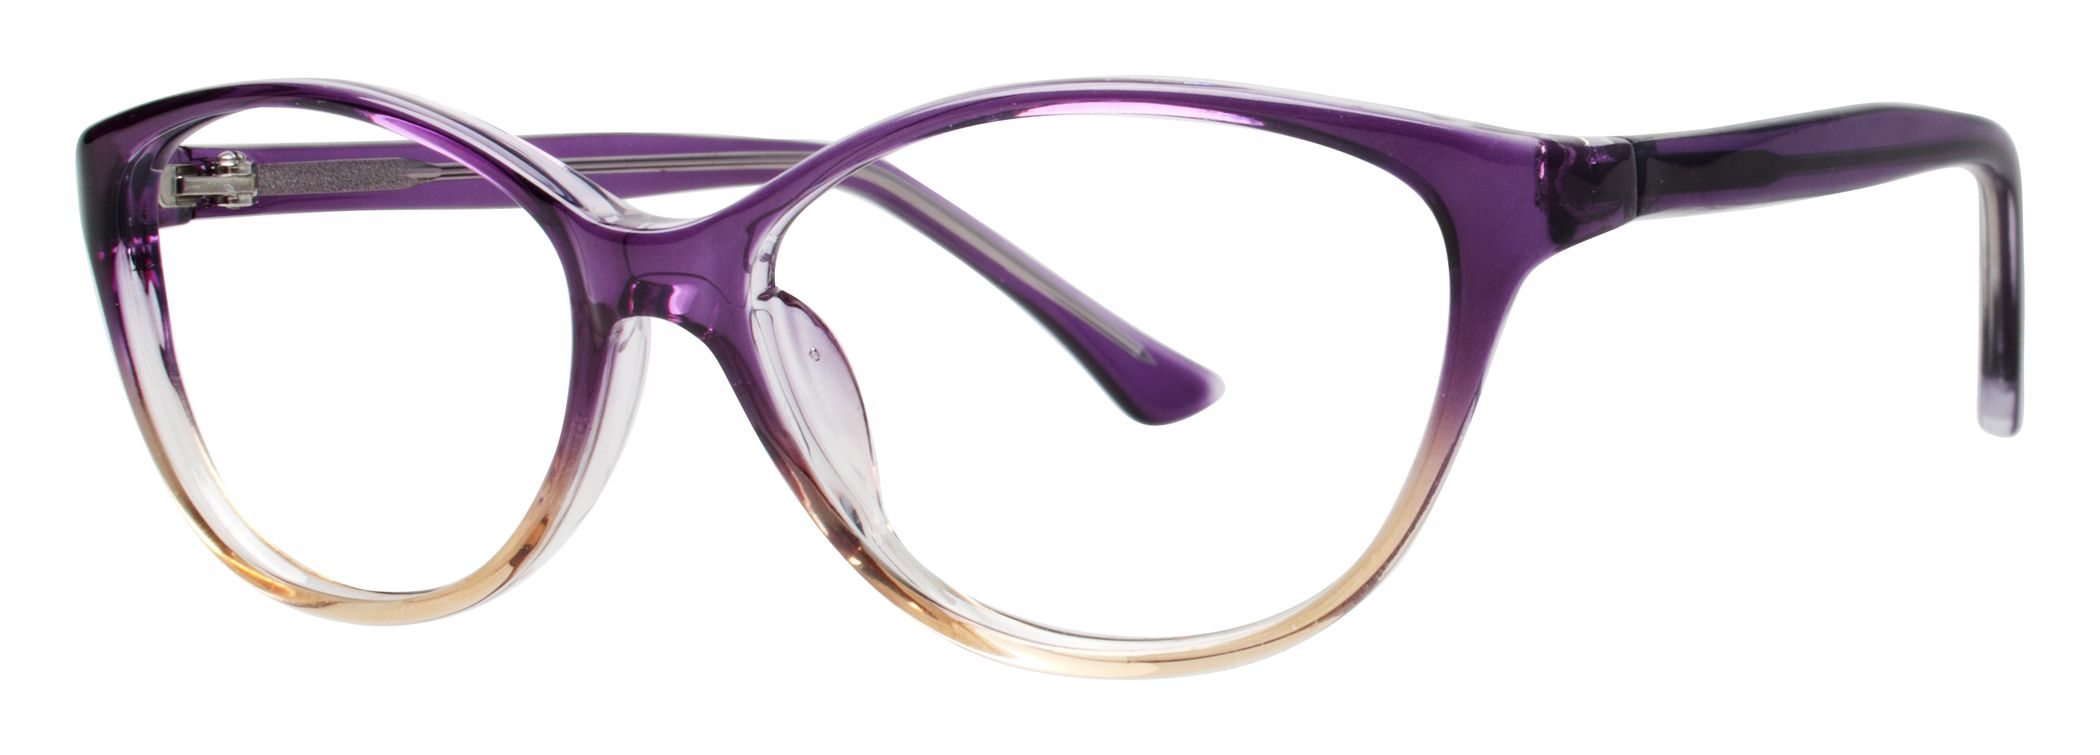 Compliment By Genevieve Boutique Eyewear Collection Modern Optical